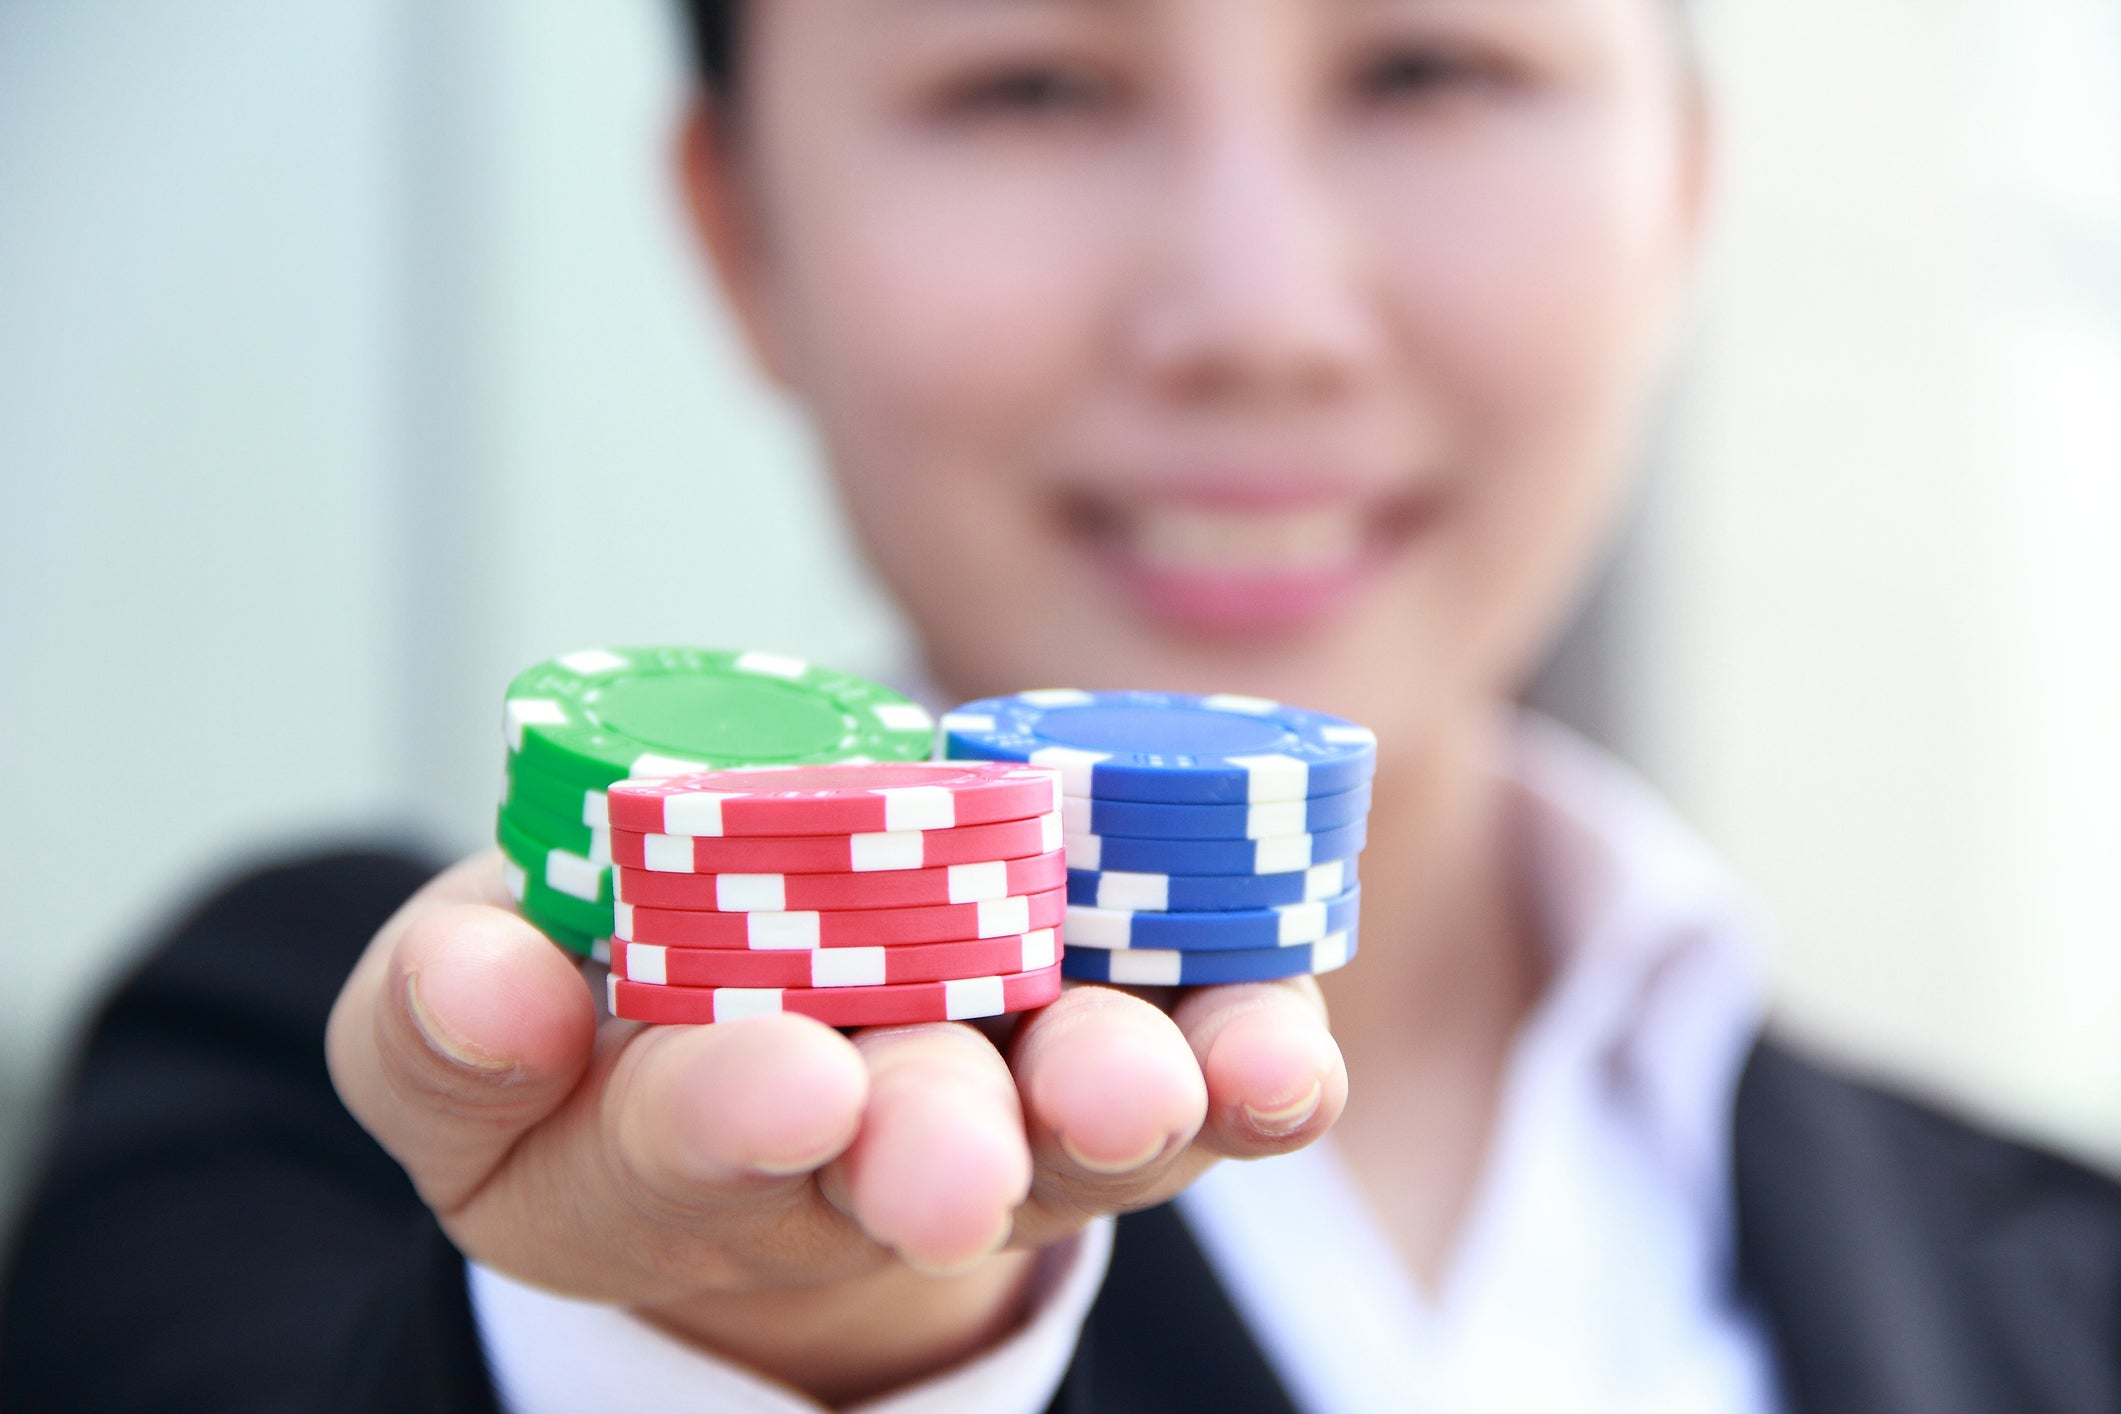 Macao Gaming Revenue Surges 492% in May as Holiday Tourists Swarm City